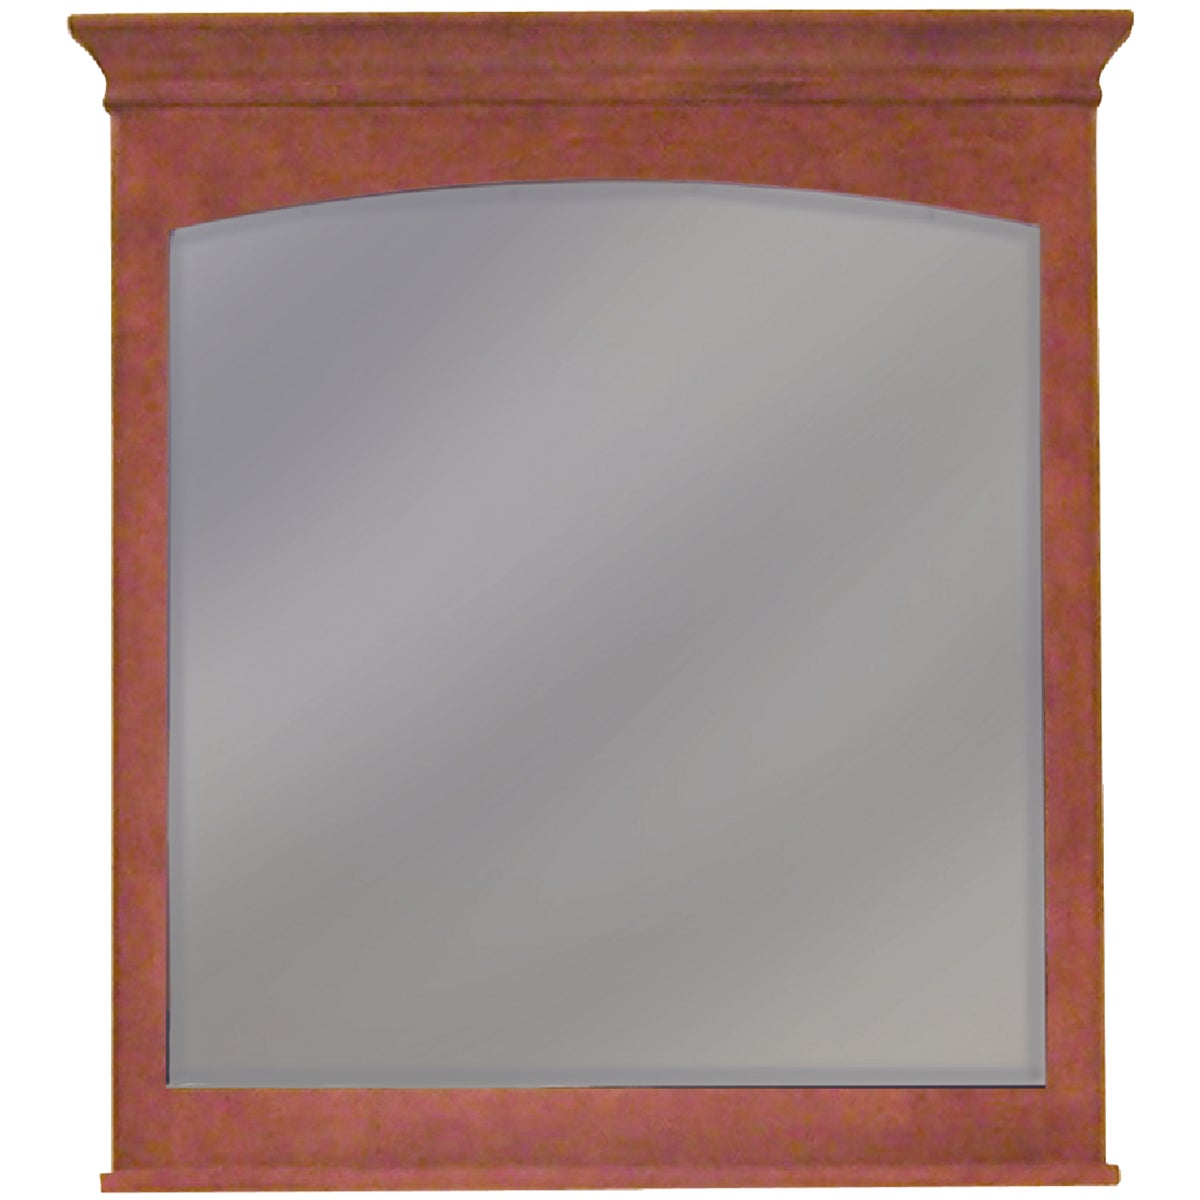 36X40 EXPRESSIONS MIRROR - EP3640MR by Sunnywood Products